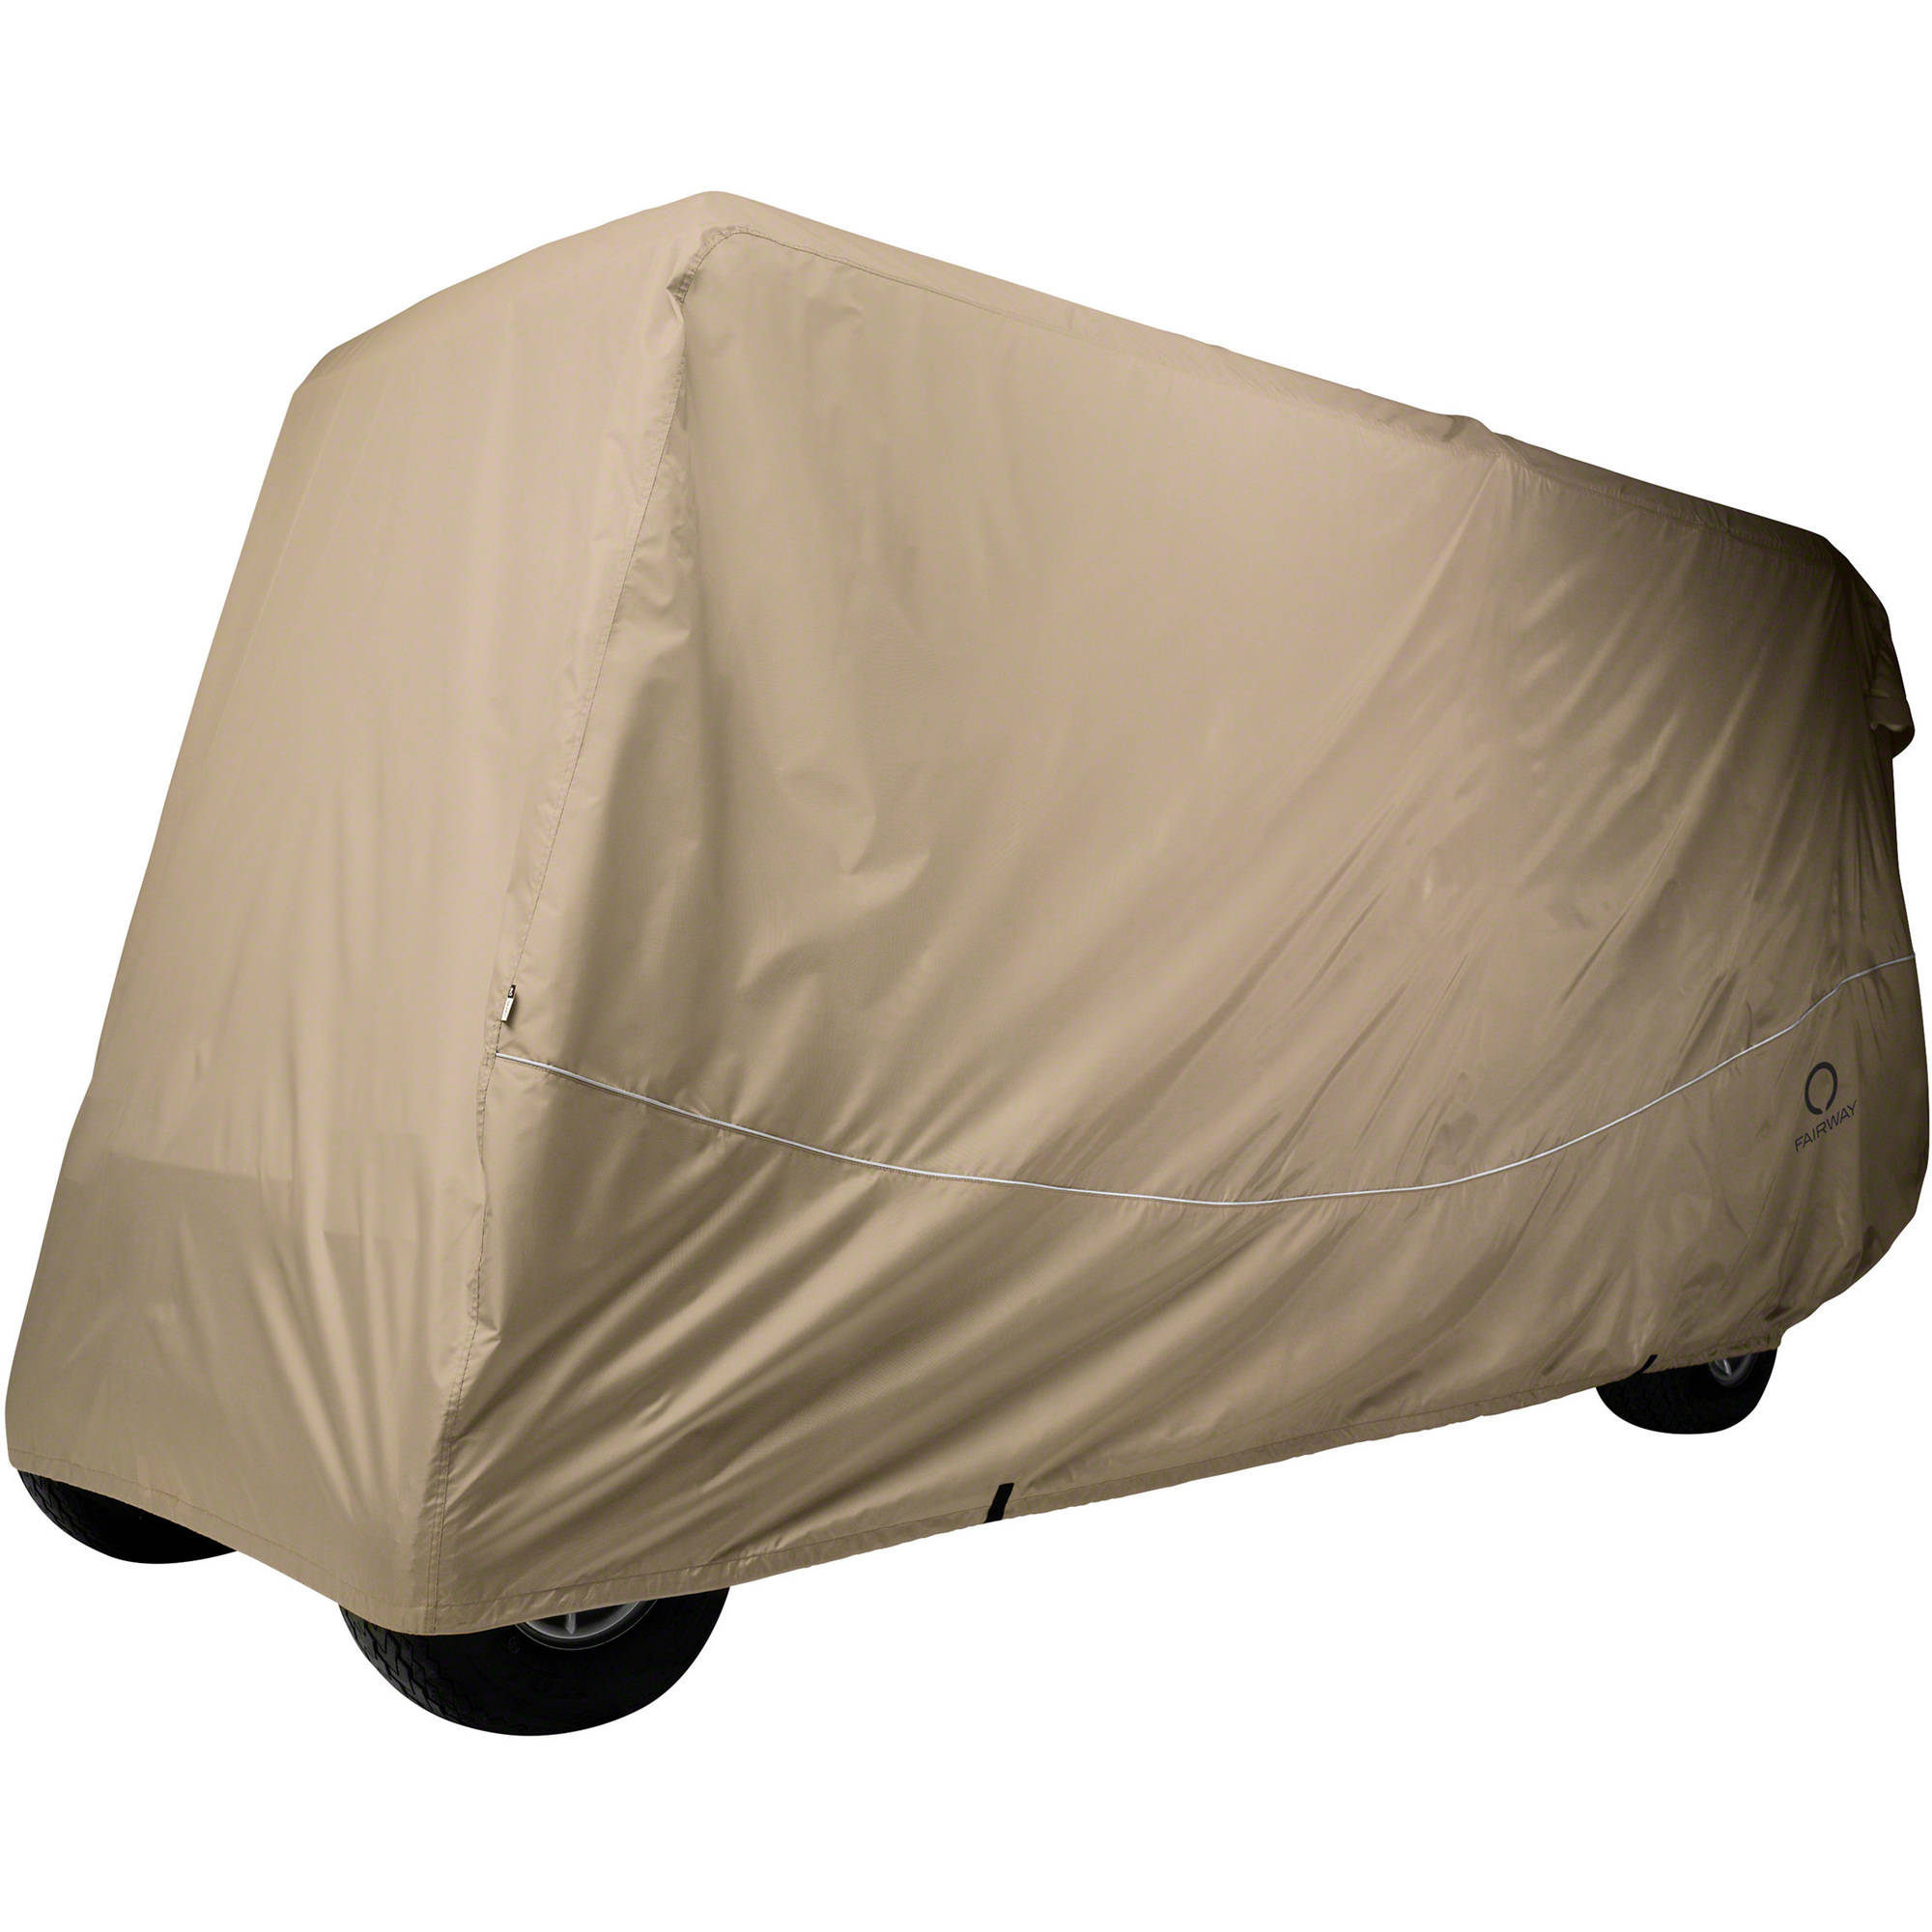 Classic Accessories Fairway Golf Car Quick-Fit Cover, 6 Passenger, Khaki